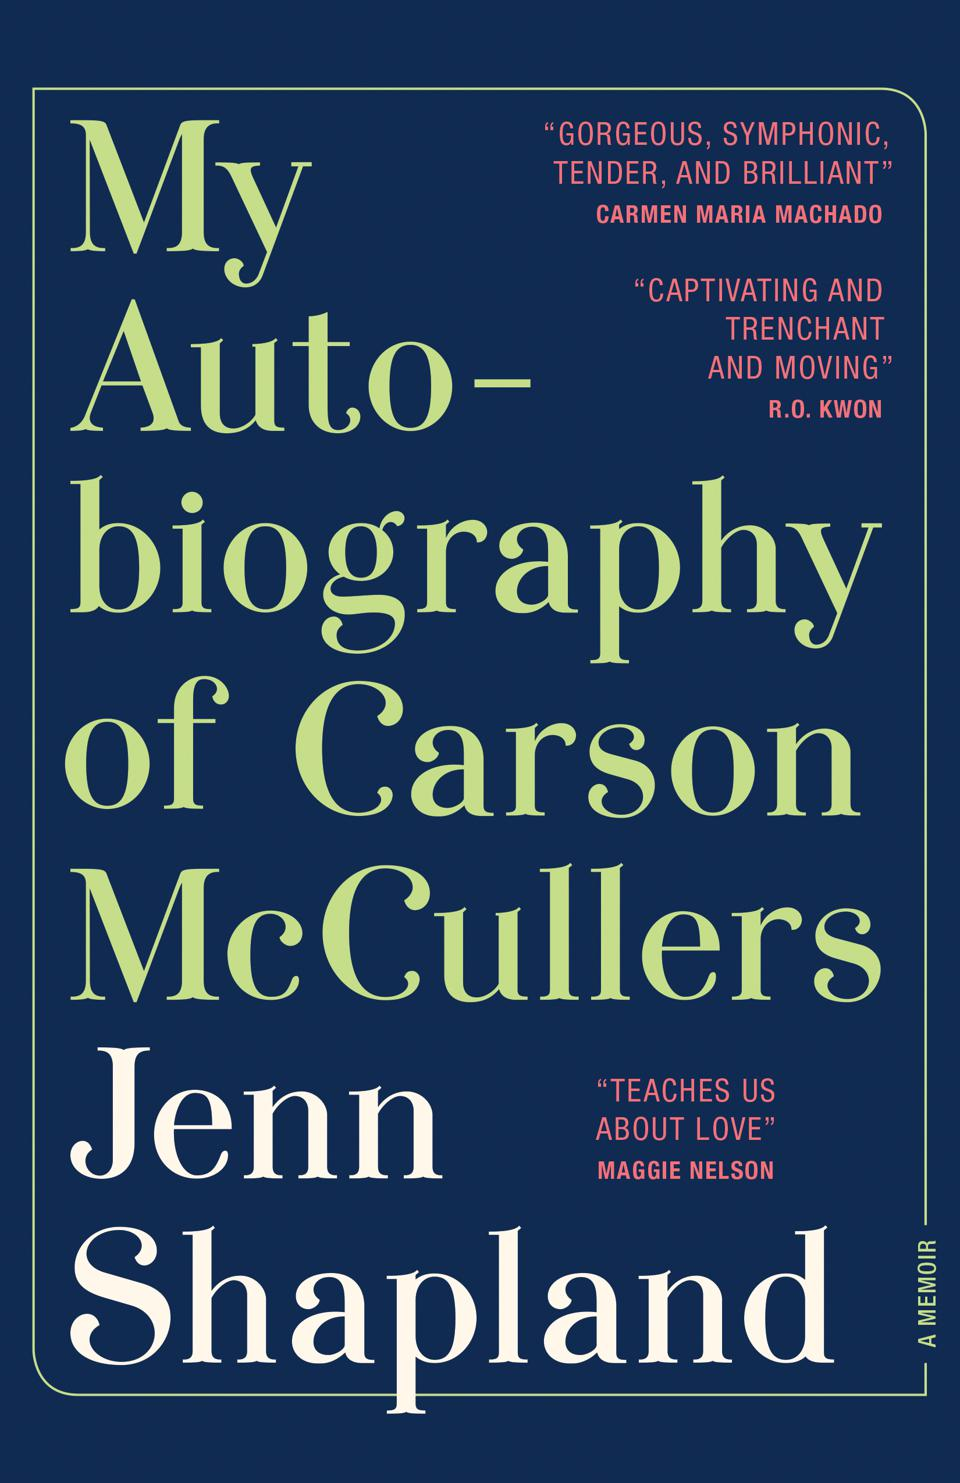 my autobiography of carson mccullers jenn shapland memoir tin house books